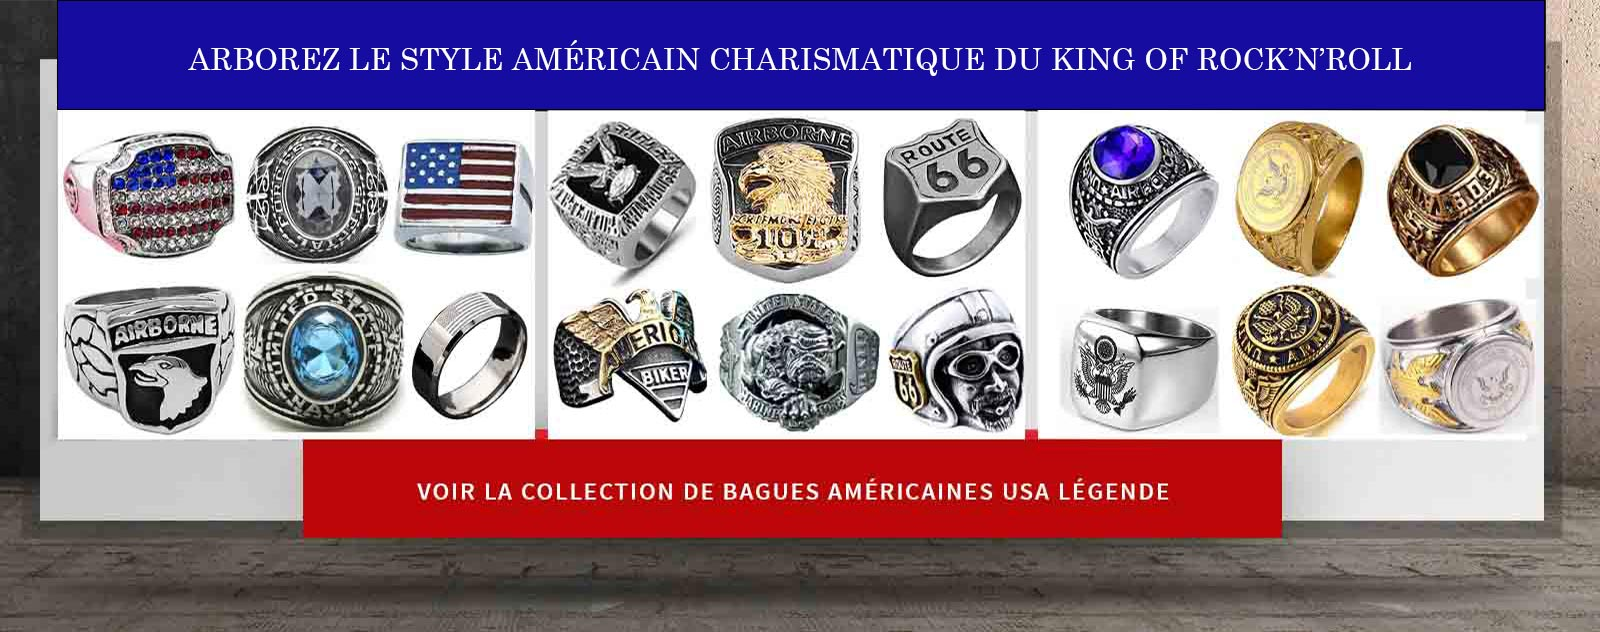 banniere vers collection bagues americaines